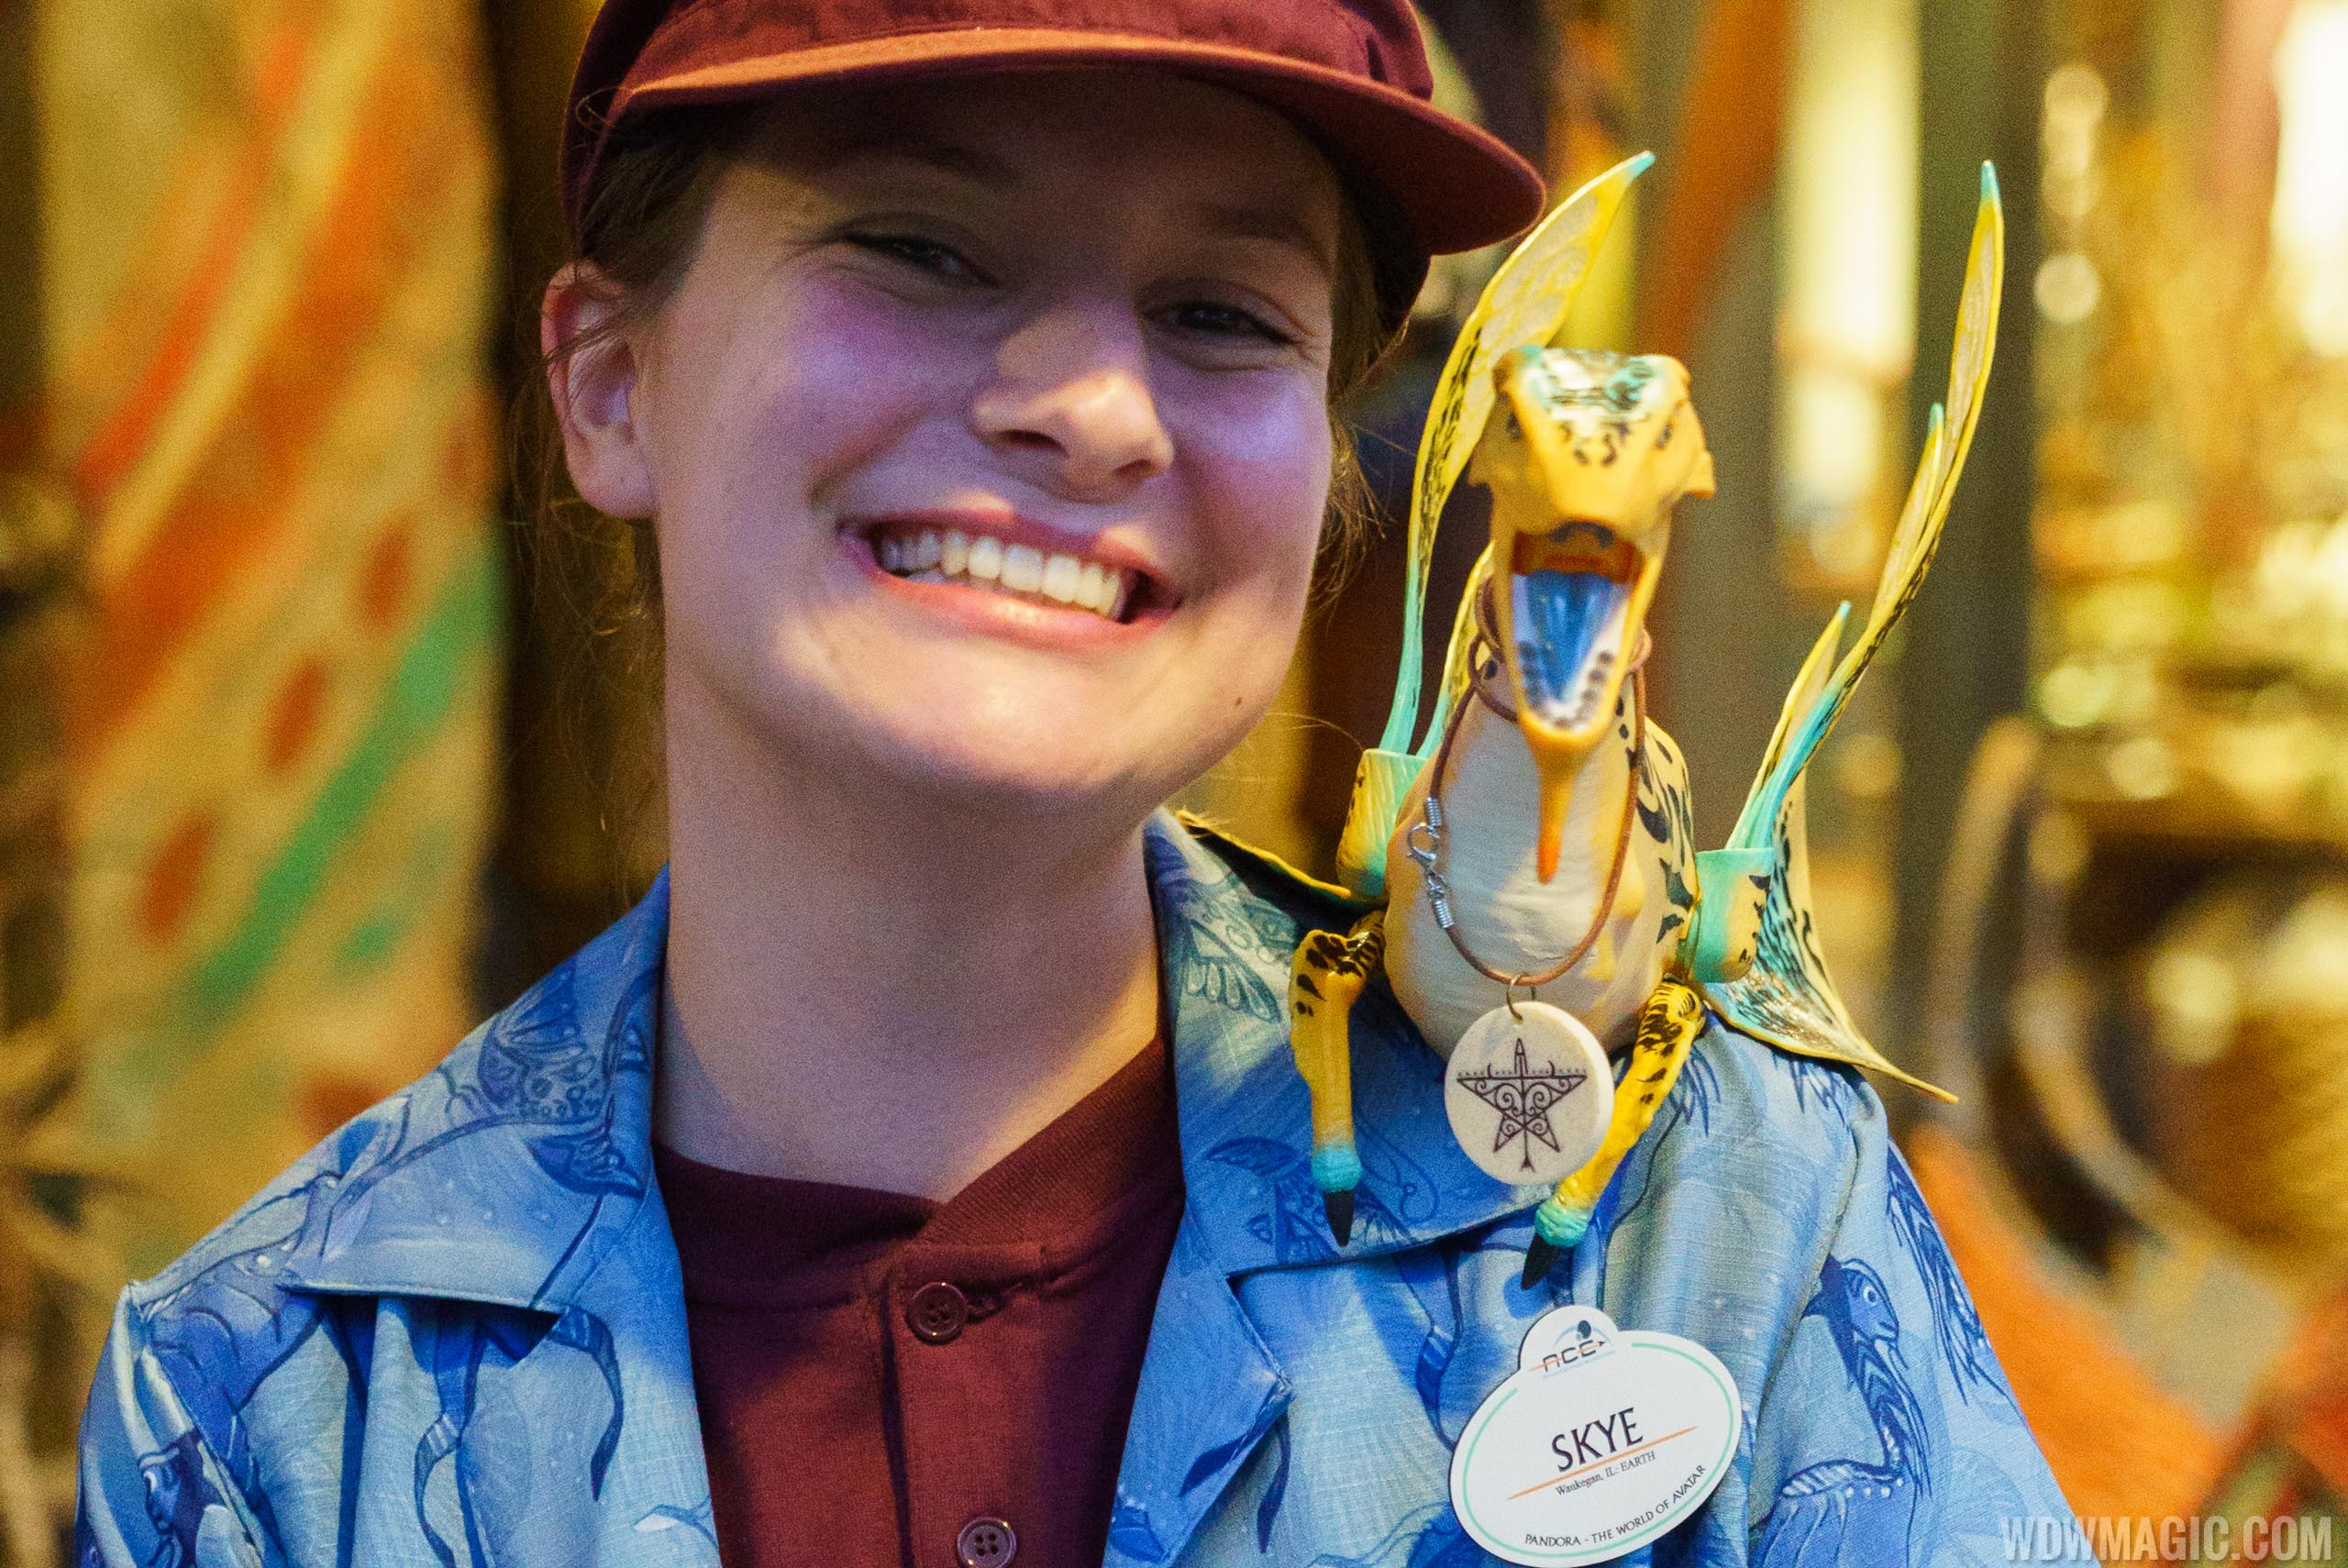 ACE guide in Pandora - The World of Avatar